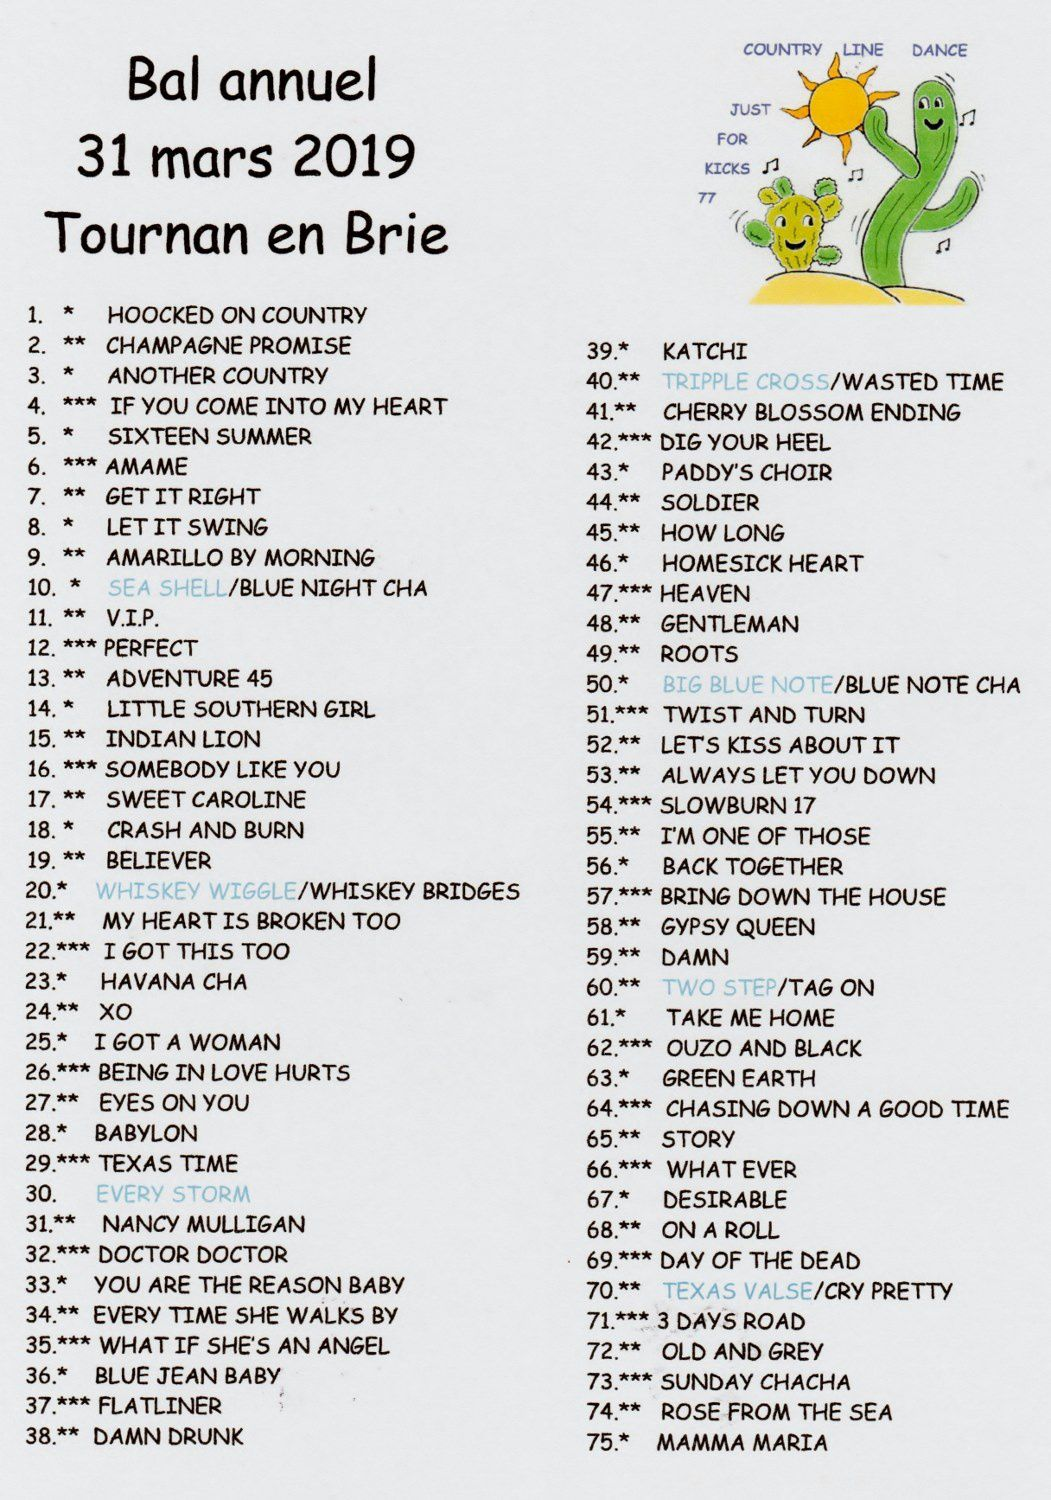 PLAYLIST TOURNAN EN BRIE 31 MARS